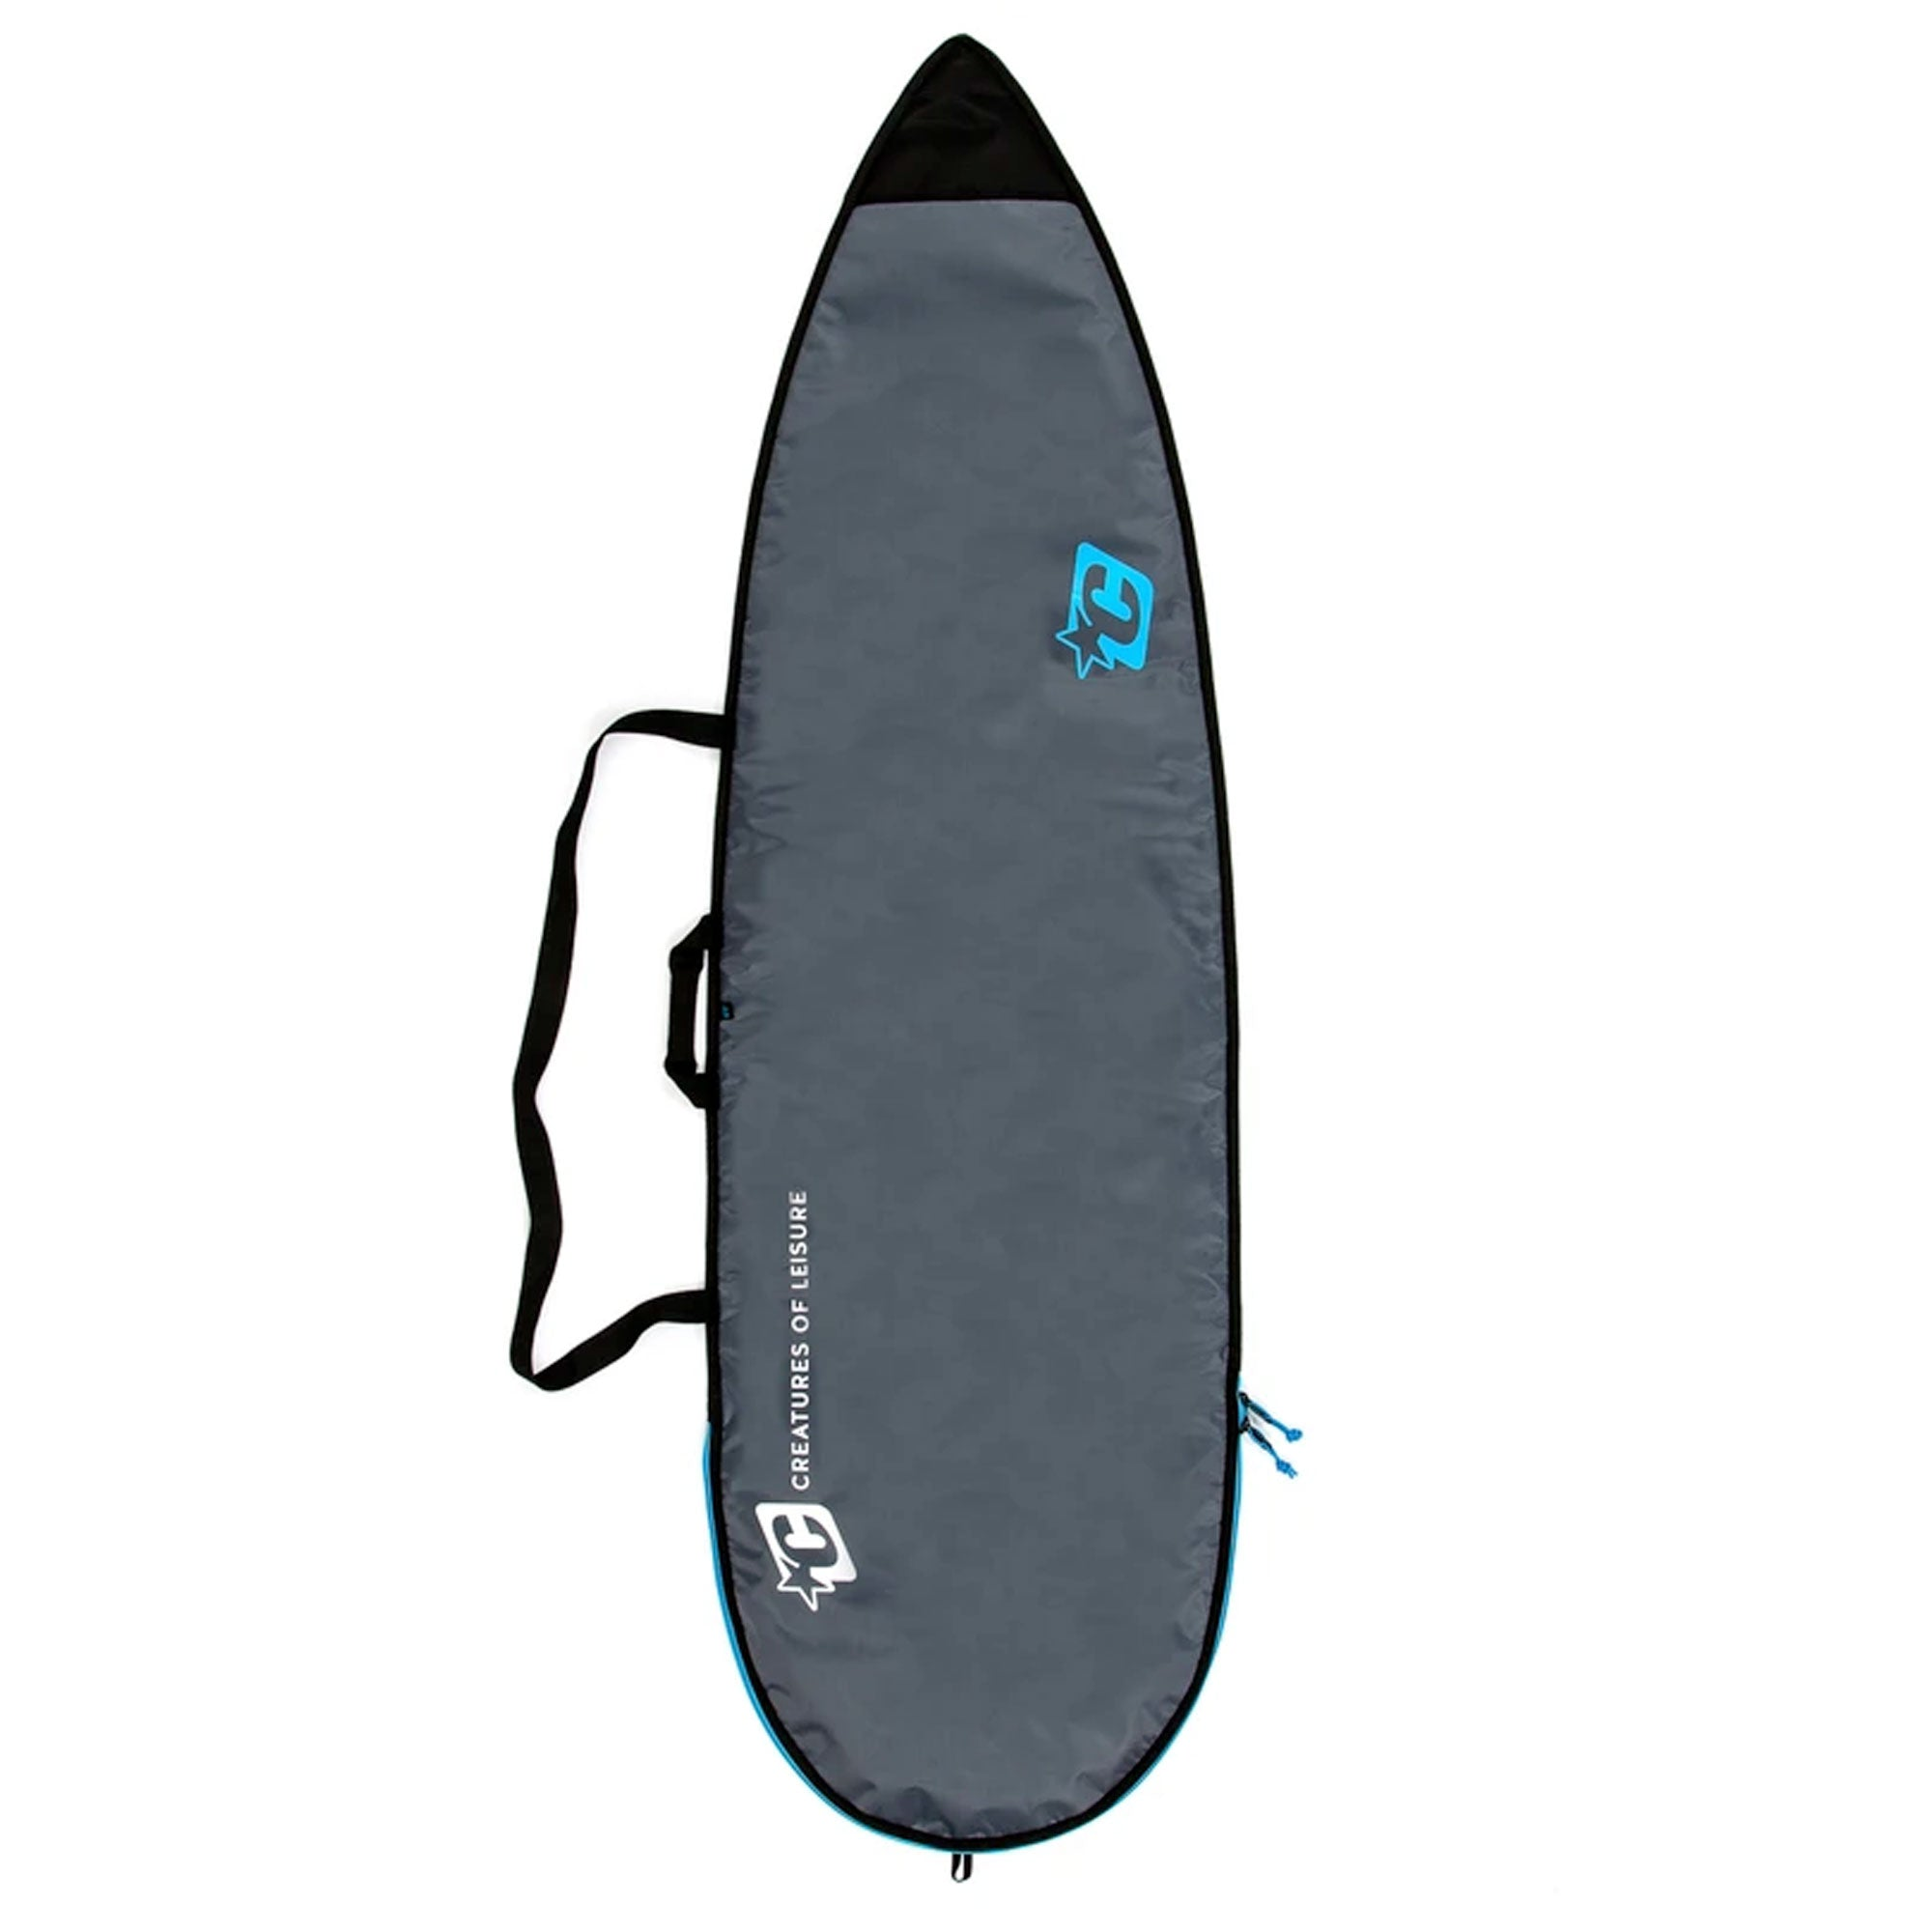 Creatures of Leisure Shortboard Lite Surfboard Bag